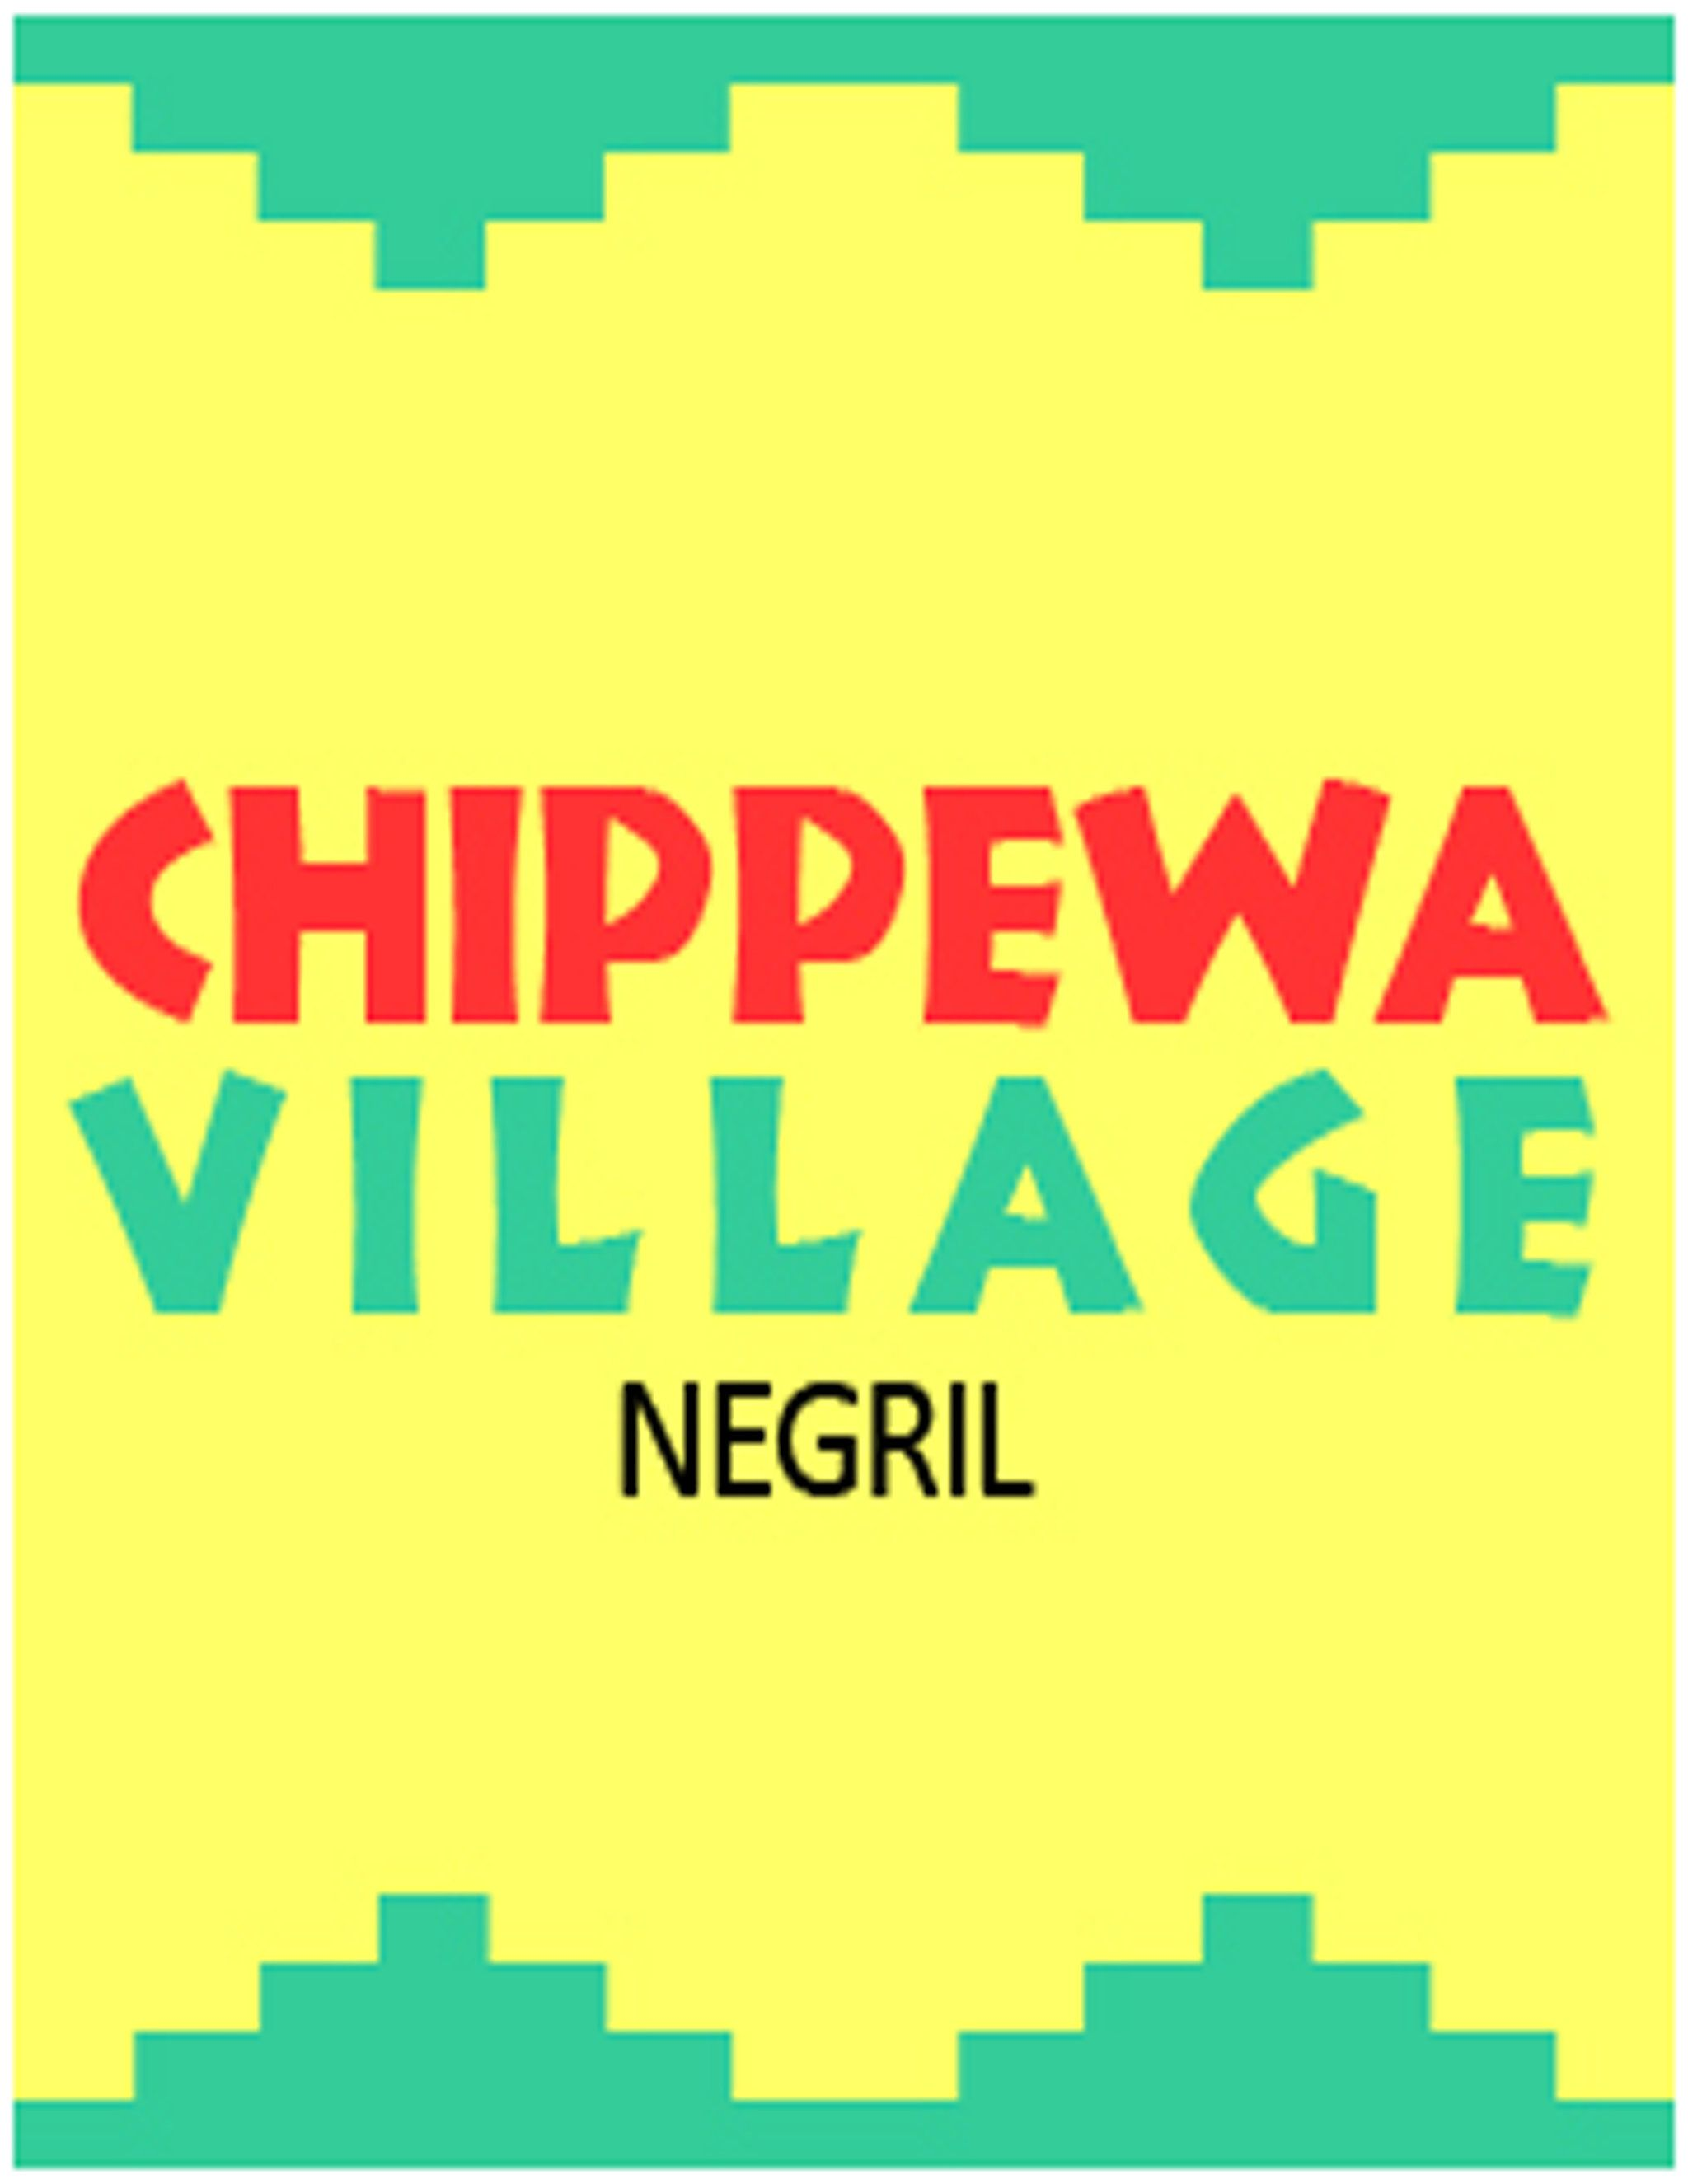 Chippewa Village